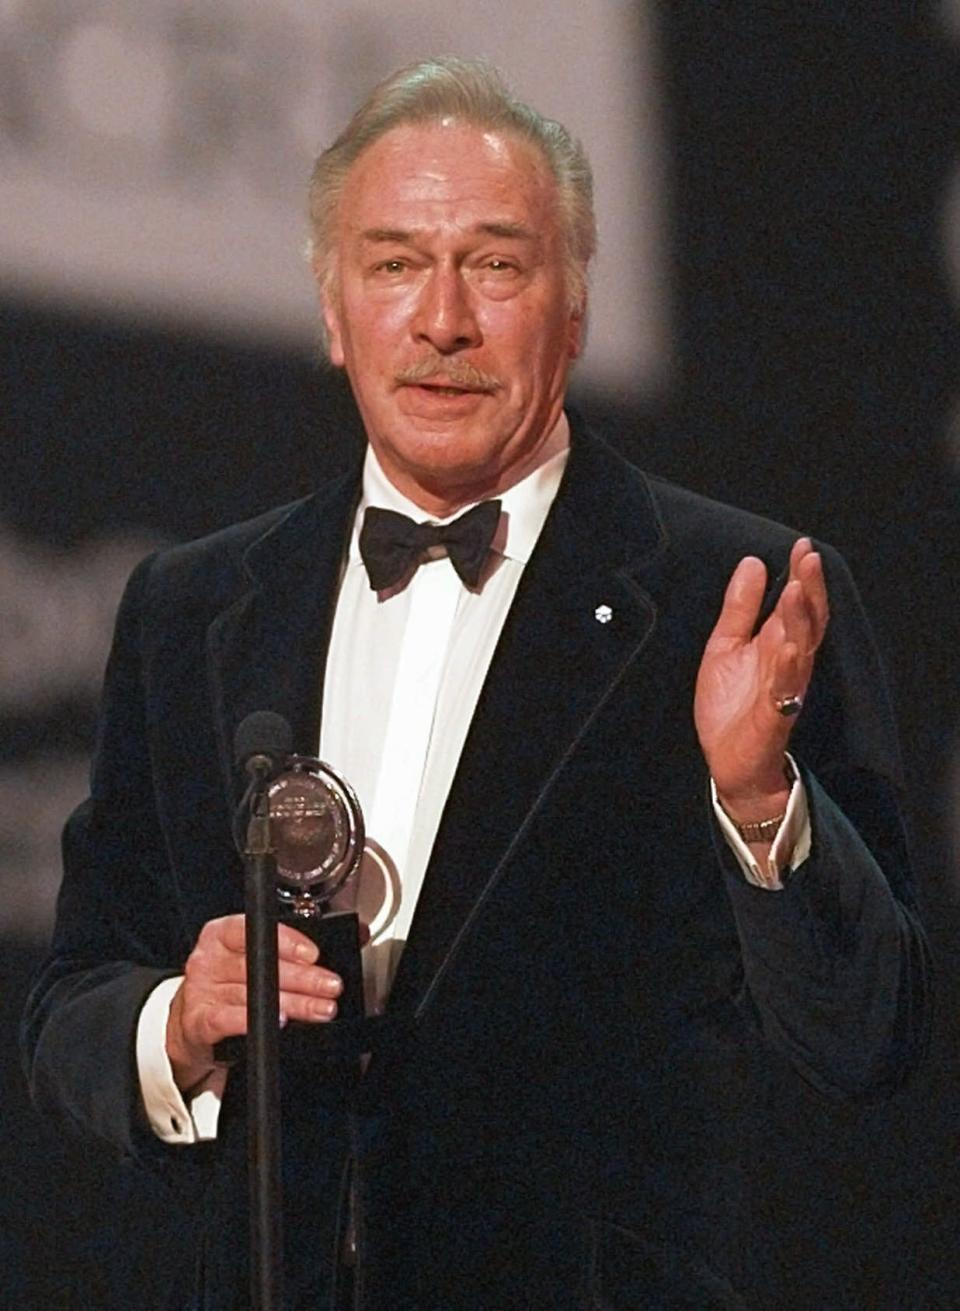 "FILE - Christopher Plummer accepts his award for best leading actor in a play for his role in ""Barrymore"" during the 51st Annual Tony Awards on June 1, 1997, in New York. Plummer, the dashing award-winning actor who played Captain von Trapp in the film ""The Sound of Music"" and at 82 became the oldest Academy Award winner in history, has died. He was 91. Plummer died Friday morning, Feb. 5, 2021, at his home in Connecticut with his wife, Elaine Taylor, by his side, said Lou Pitt, his longtime friend and manager. (AP Photo/Adam Nadel, File)"